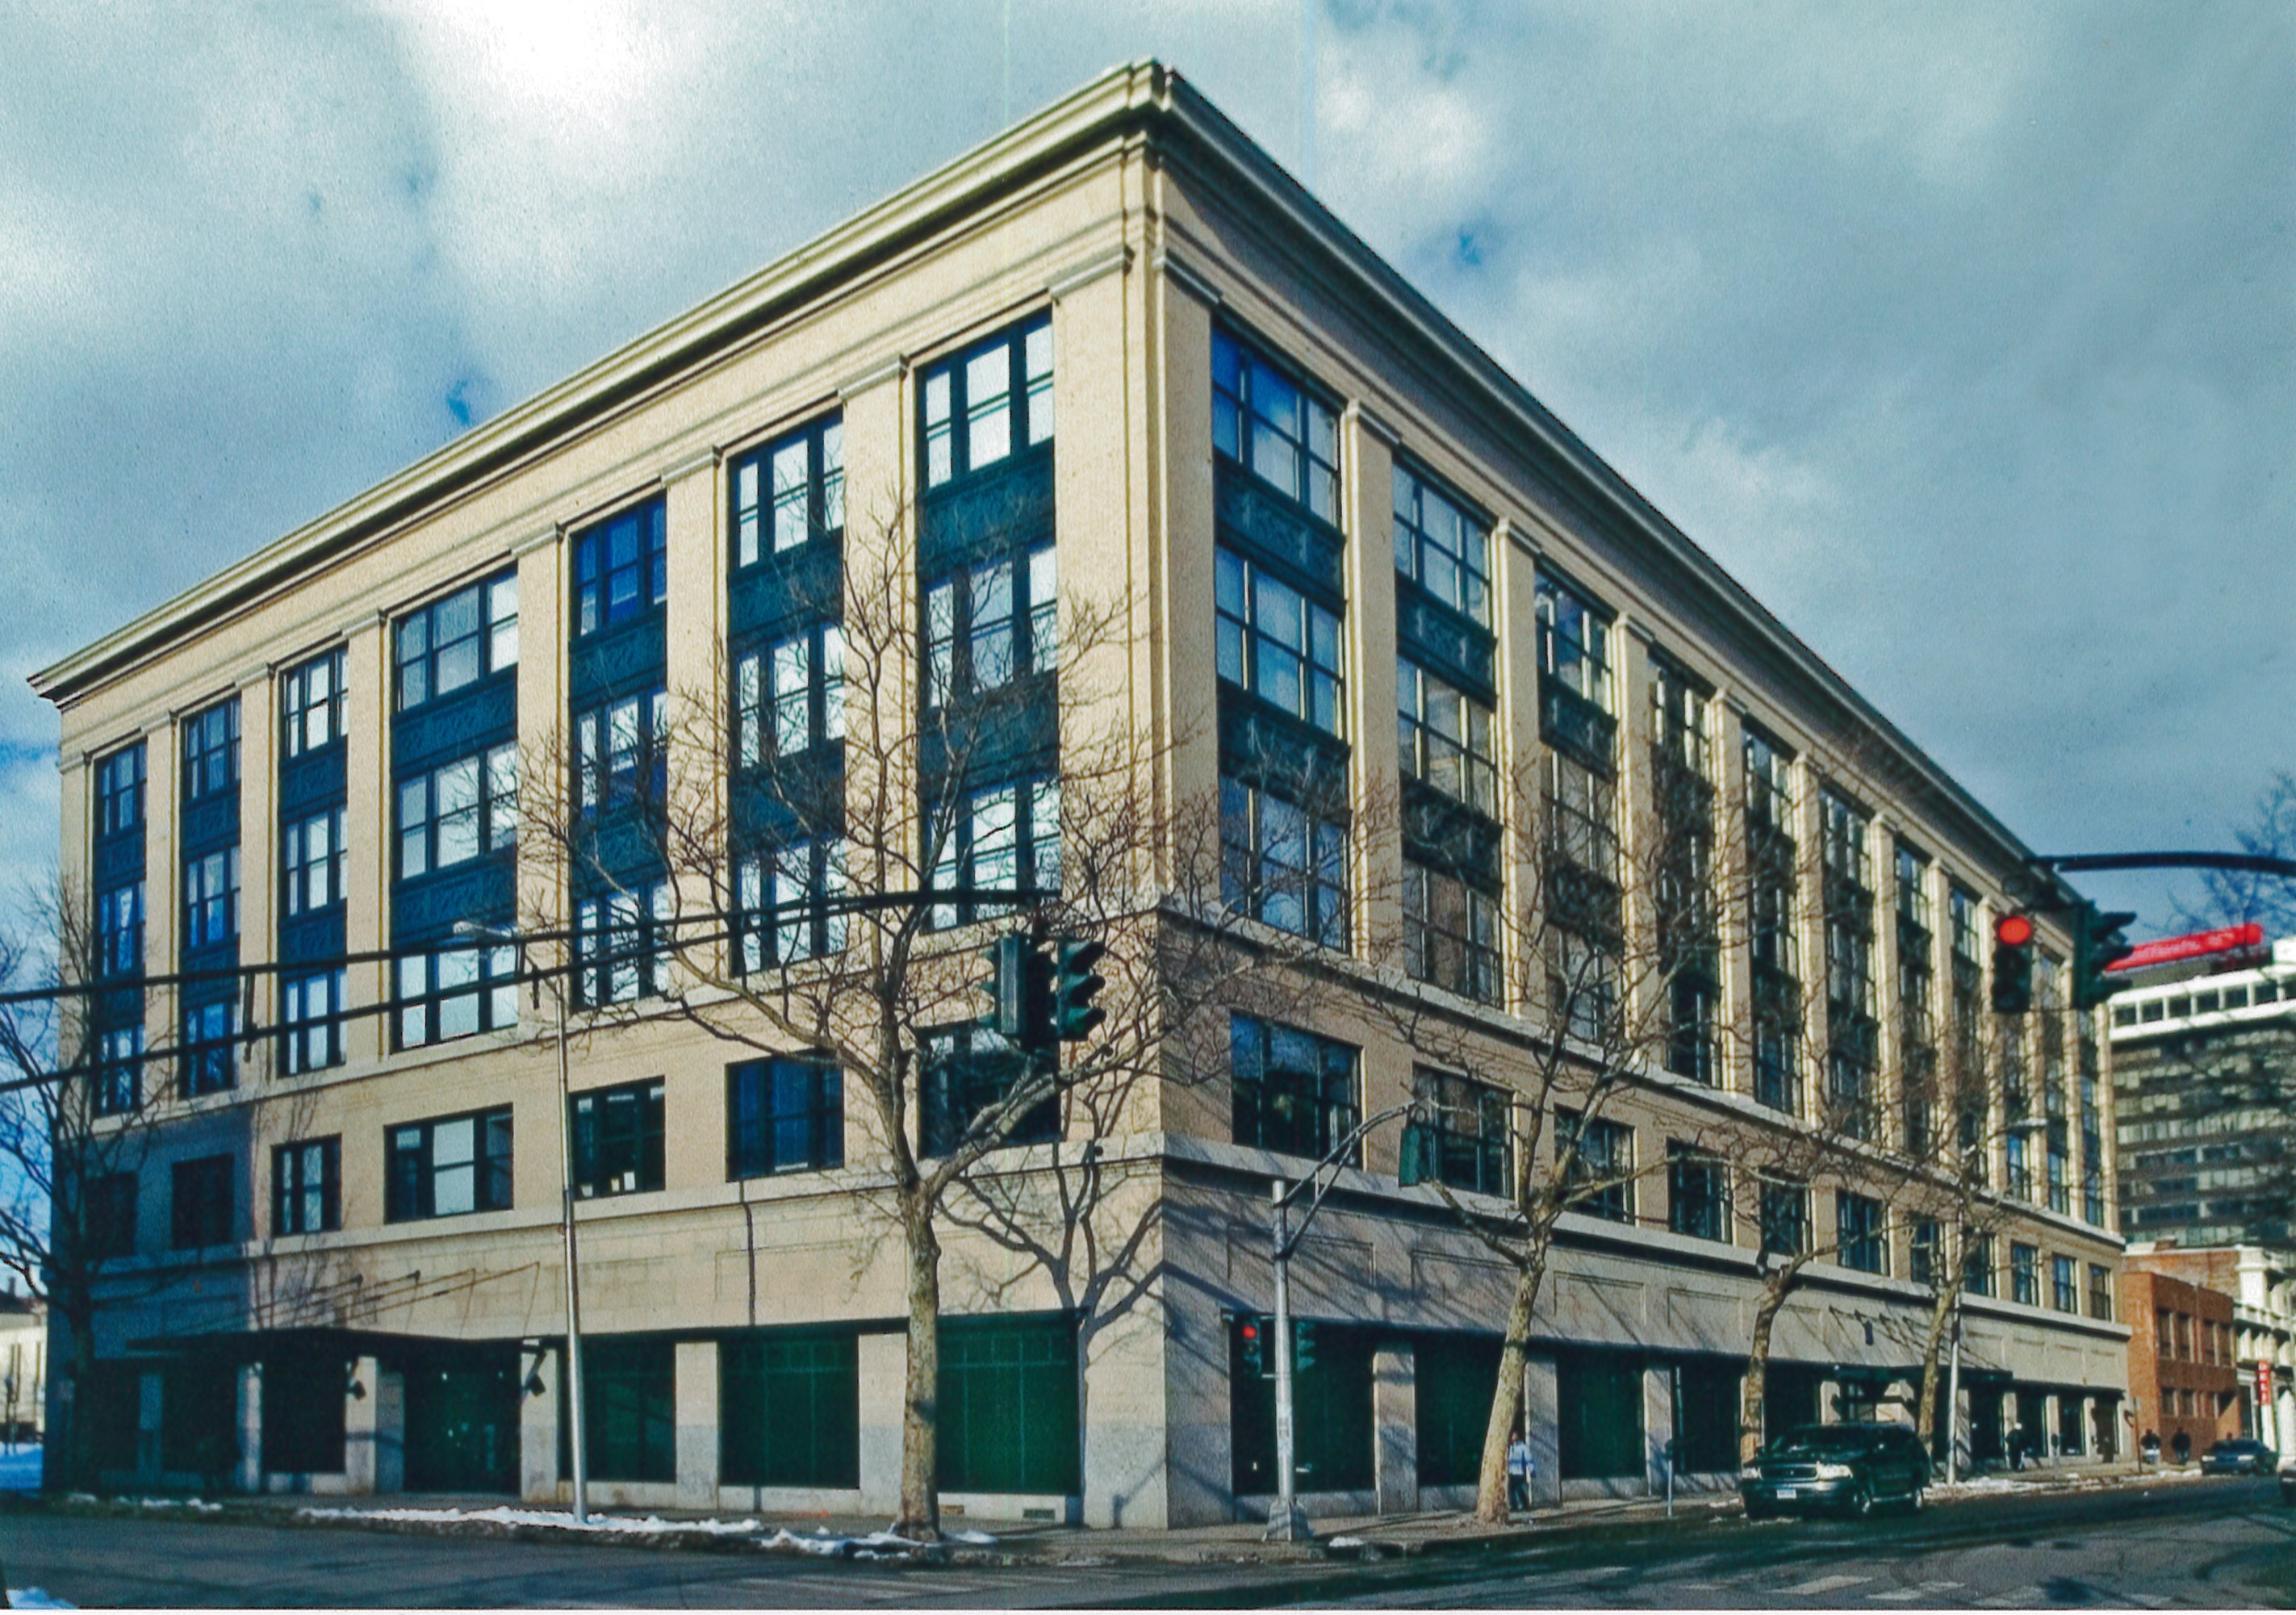 Sterling Market Lofts in Bridgeport, Connecticut, after renovation